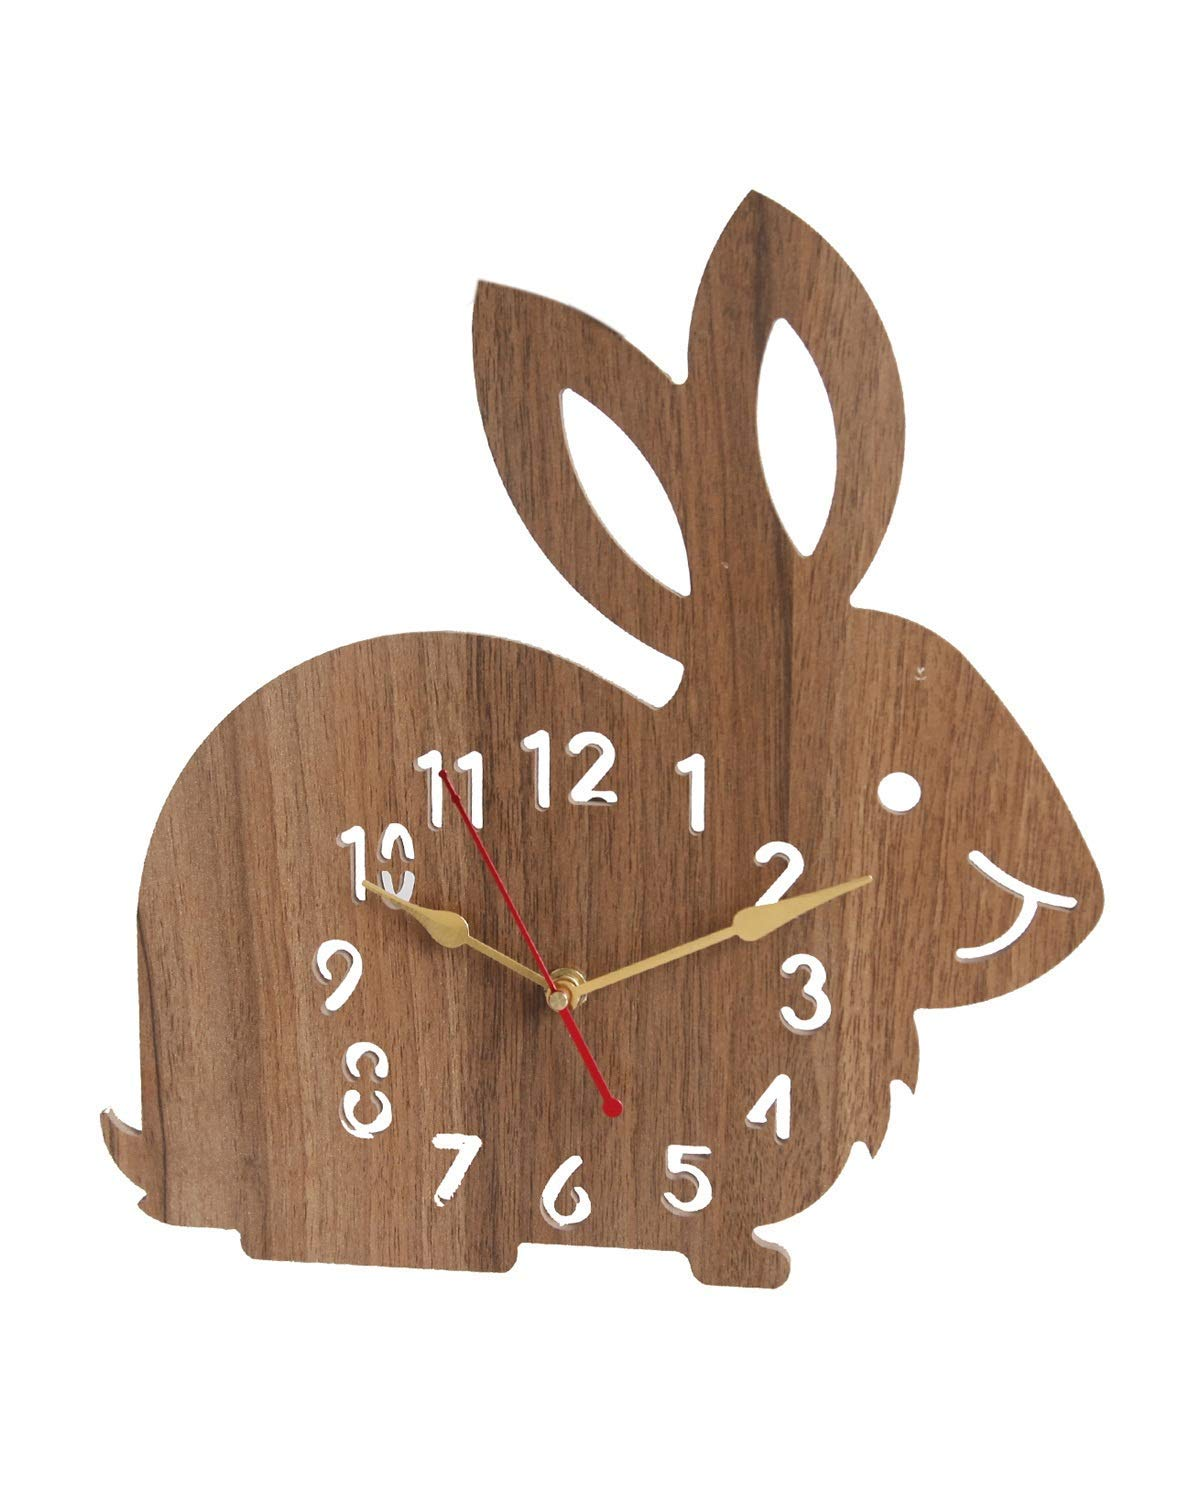 Diparu Decorative Wooden Wall Clock for Home